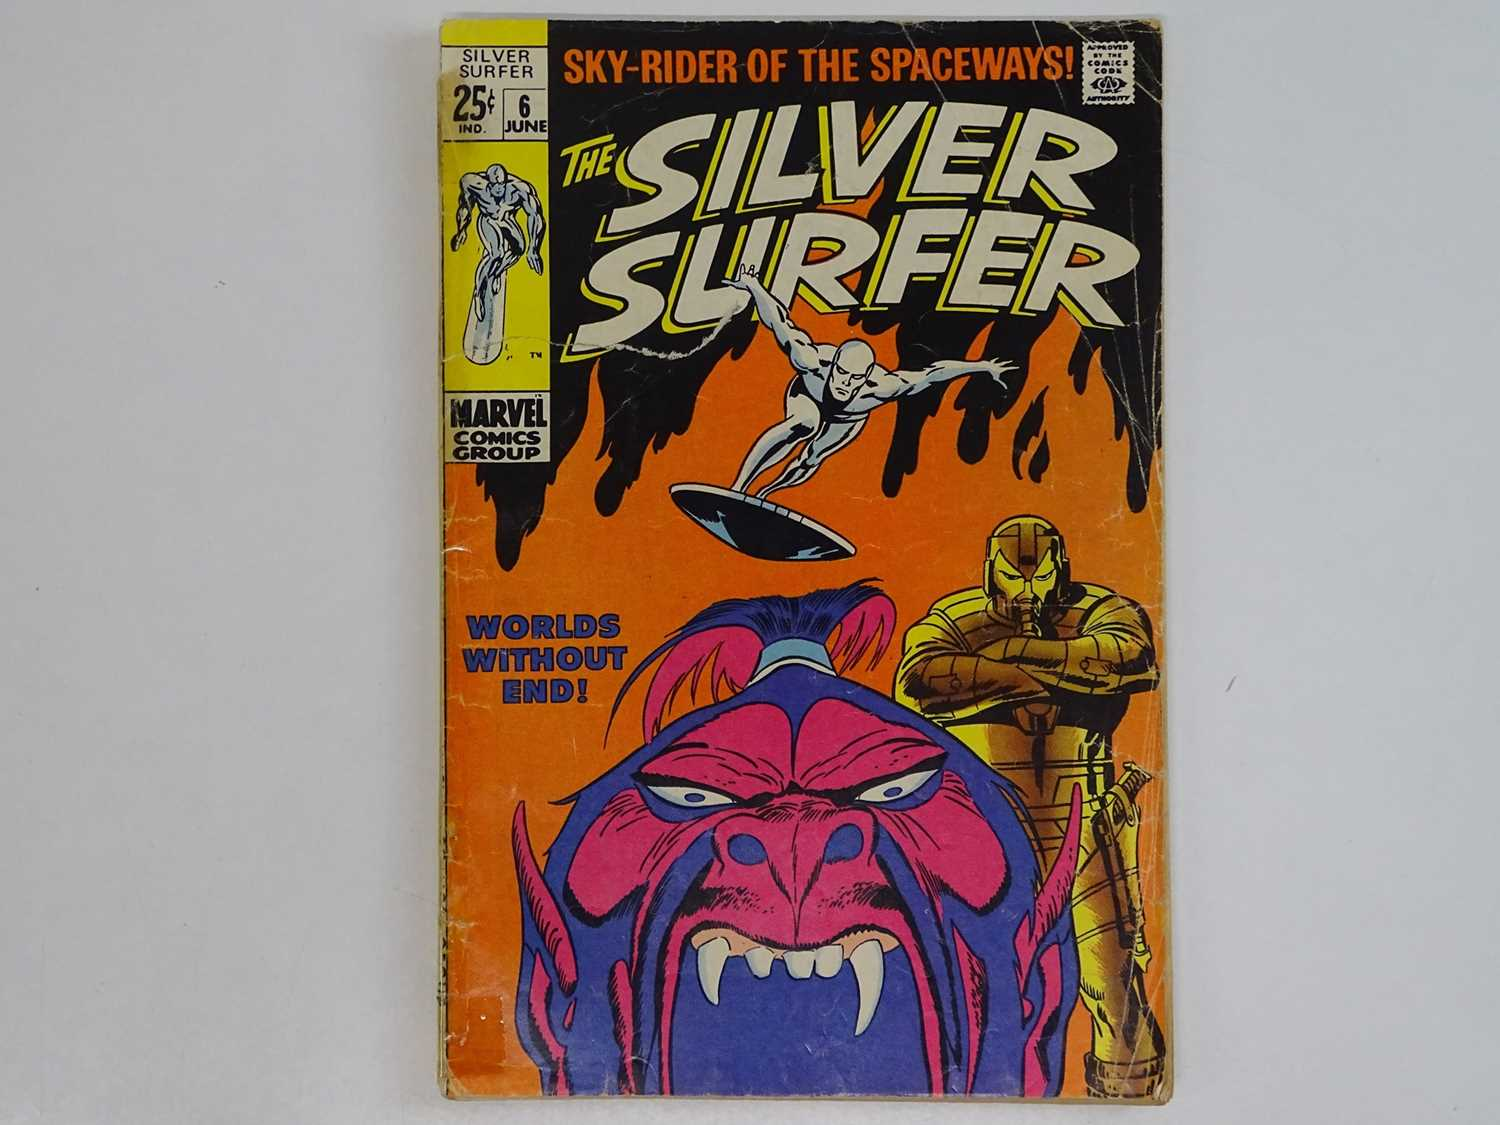 """SILVER SURFER #6 - (1970 - MARVEL) - John Buscema covers and interior art with a """"Tales of the"""